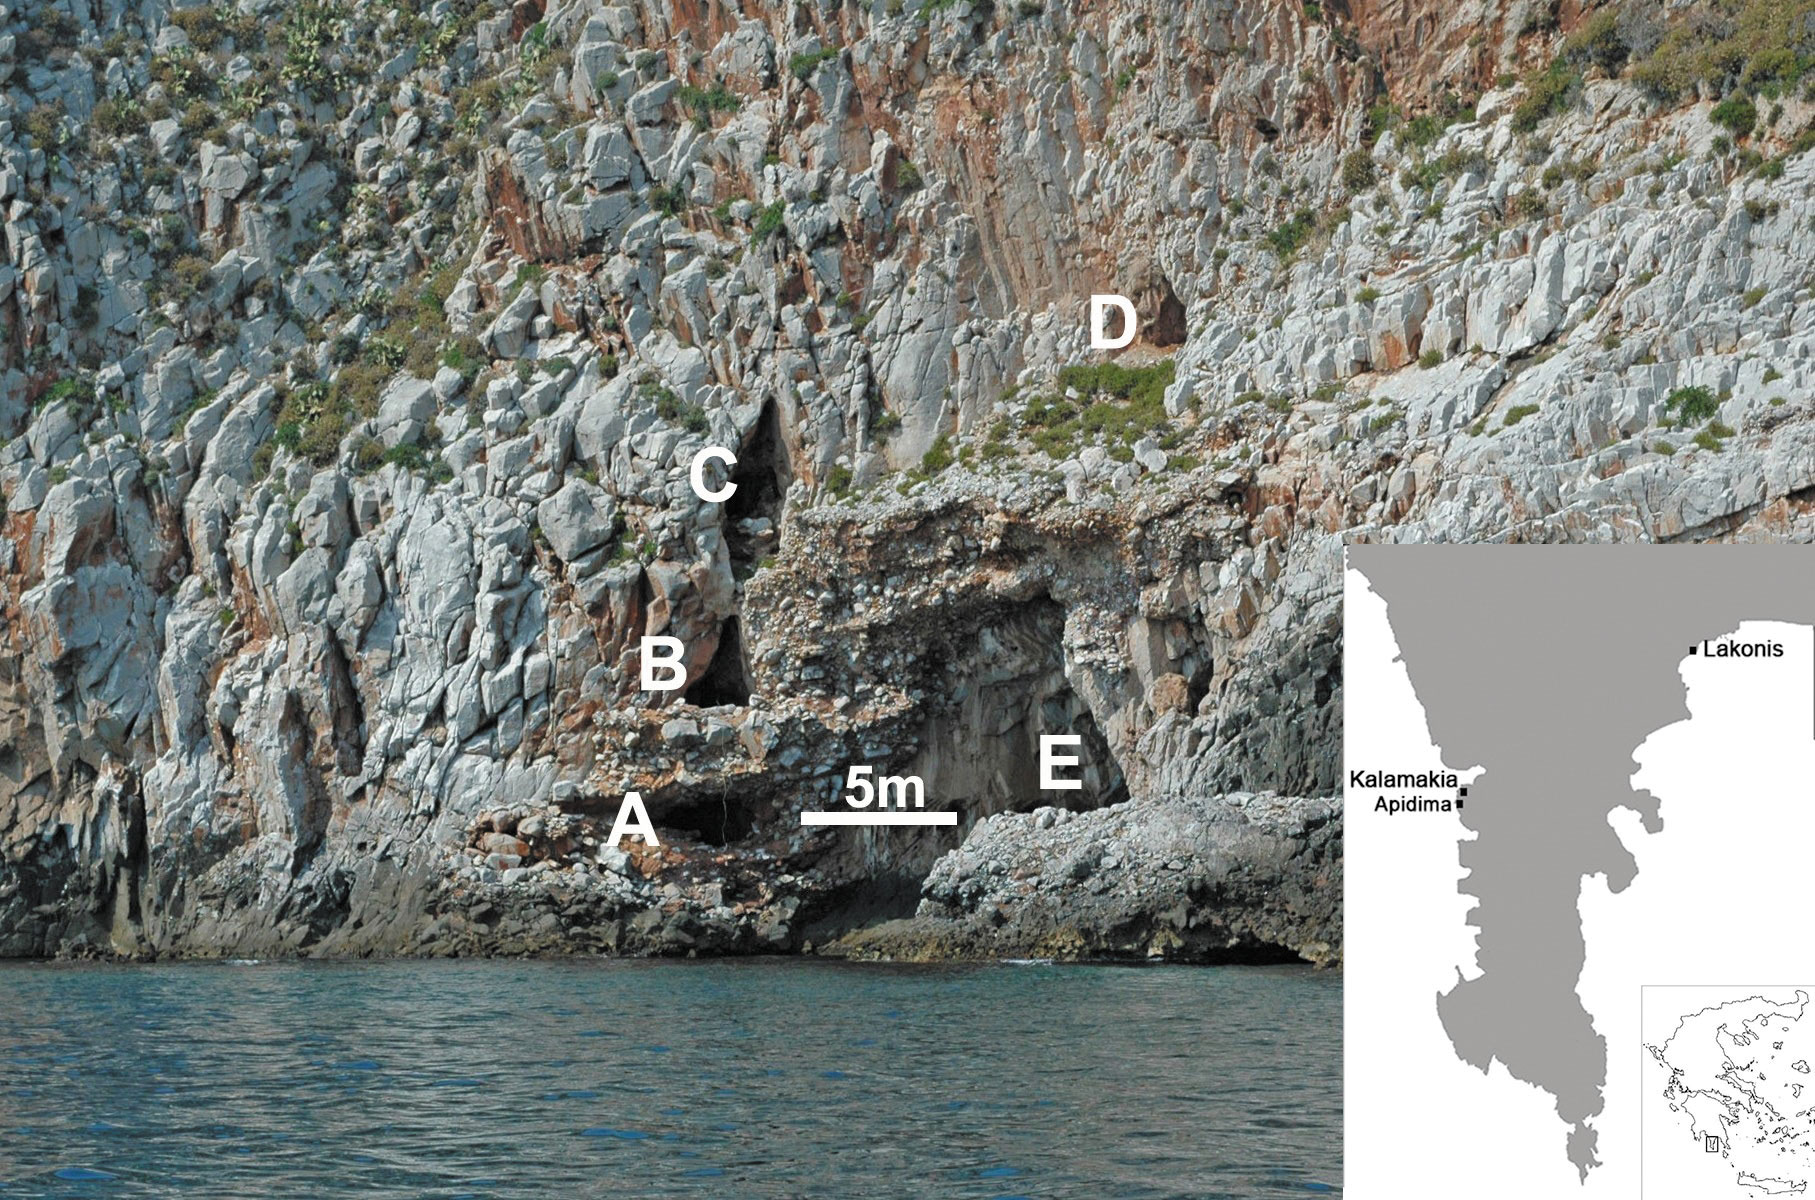 Fig. 1: The Apidima Cave Complex from outside